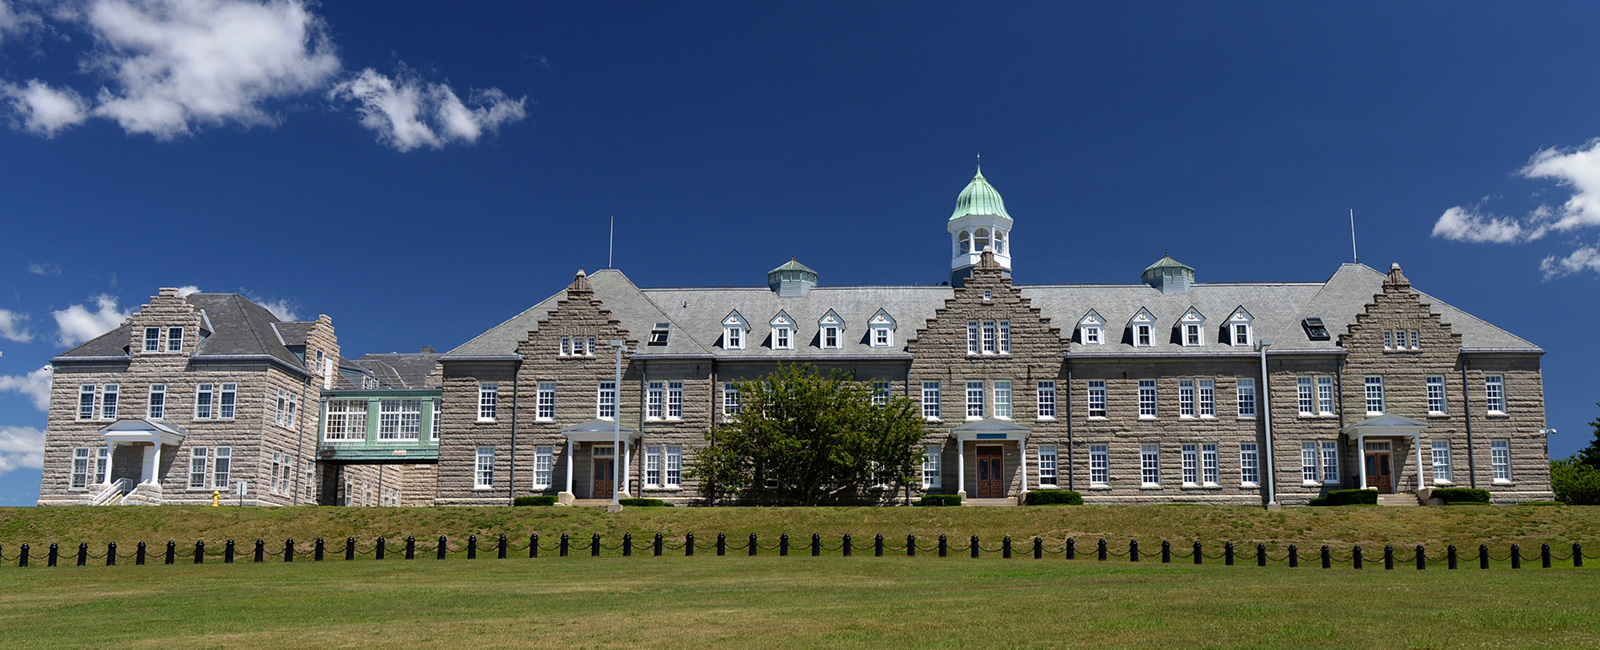 U.S. Naval War College's (NWC) Luce Hall on Coasters Harbor Island in Newport, Rhode Island.